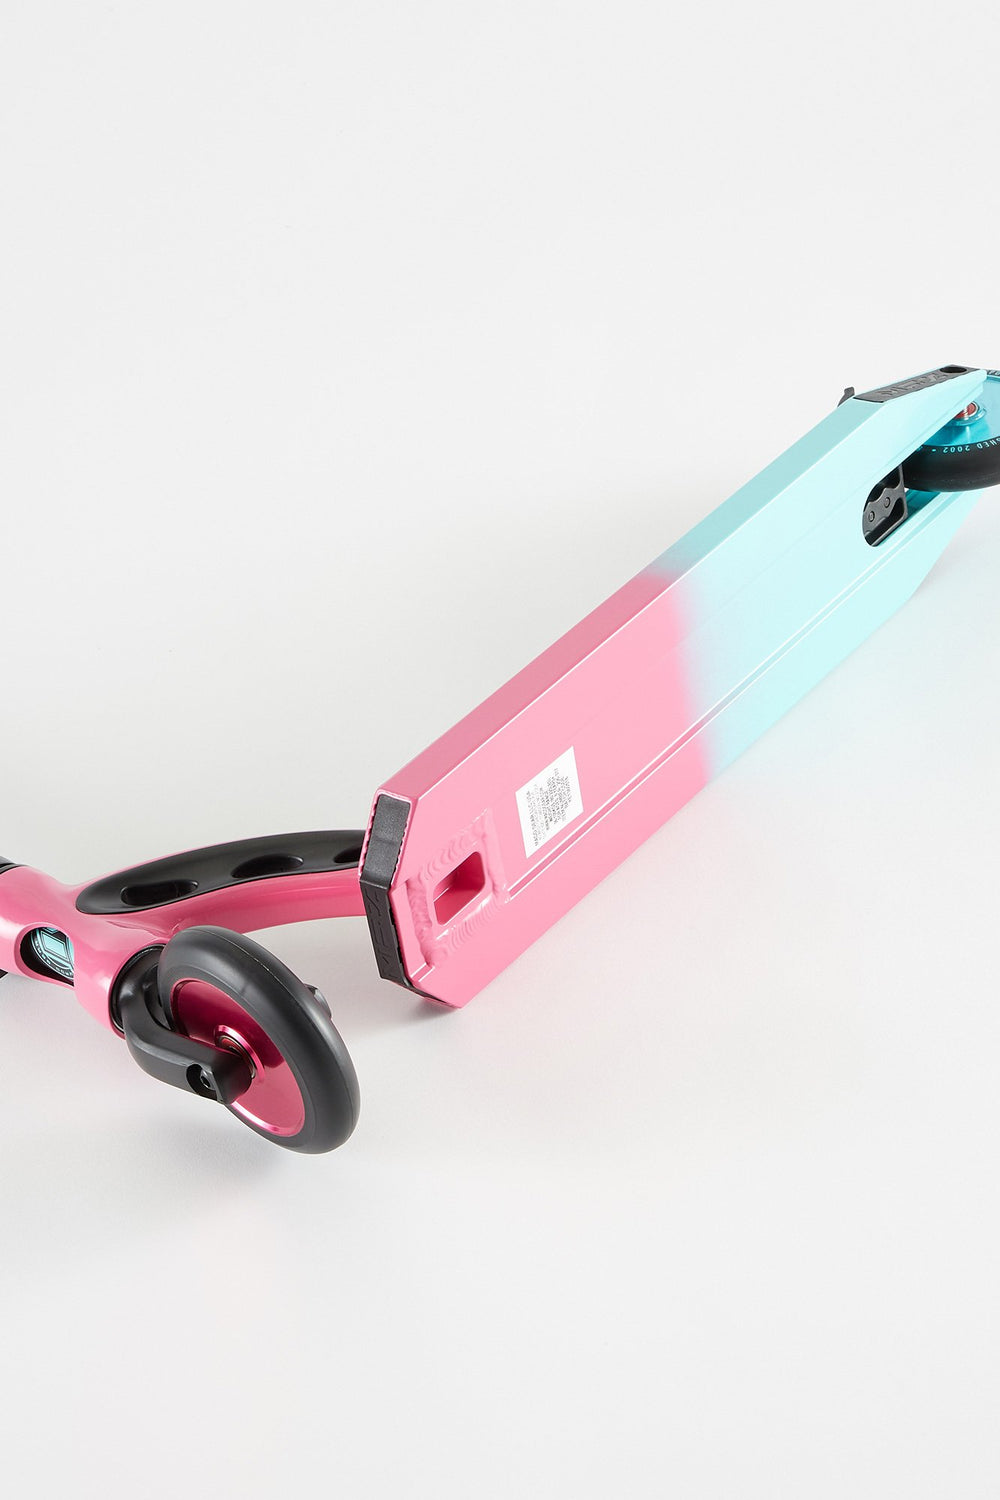 Madd Gear VX8 Pro Scooter - Pink/Teal Pink